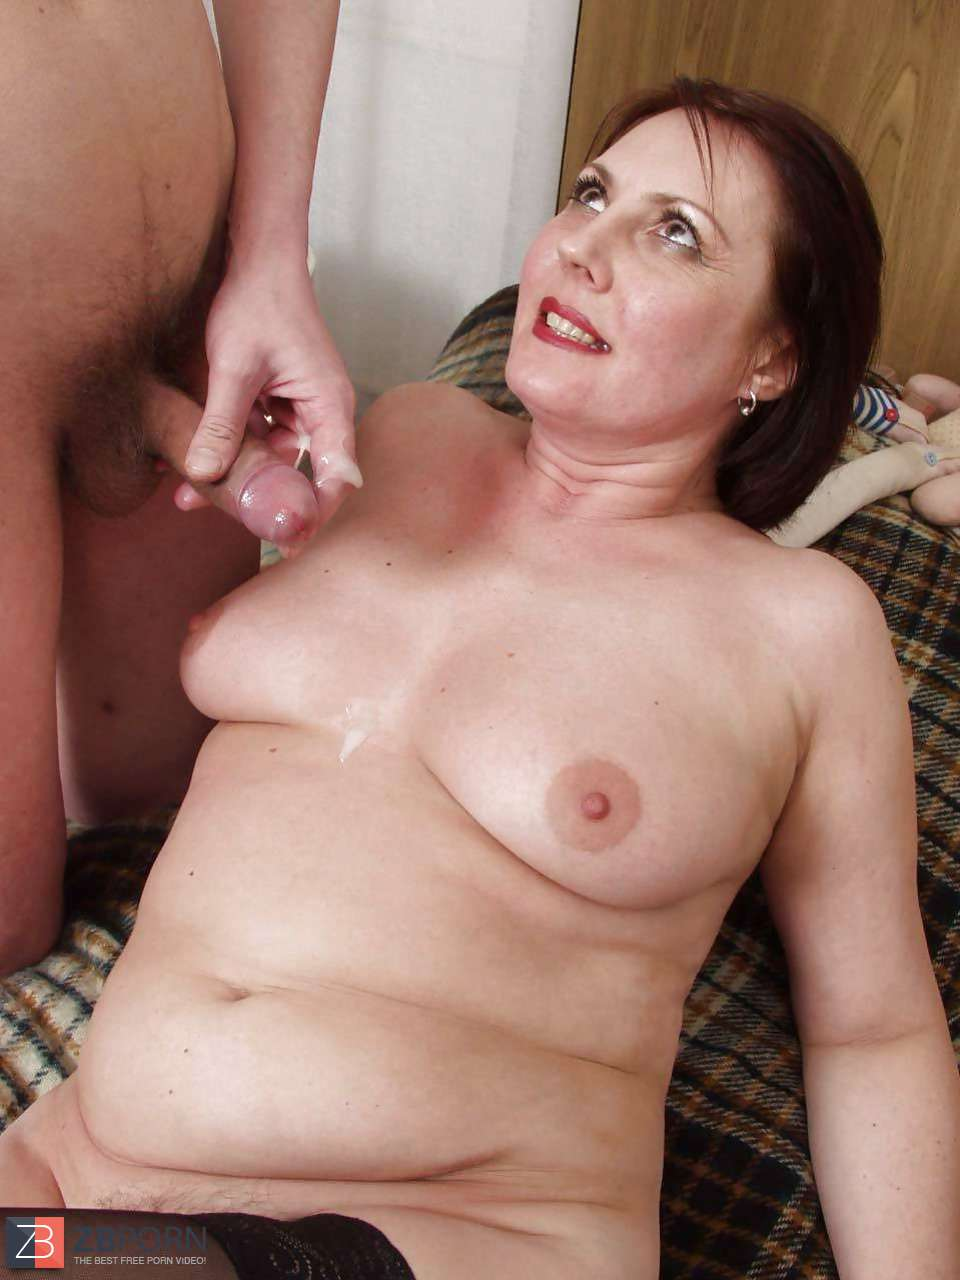 Mom Teen Porn Video